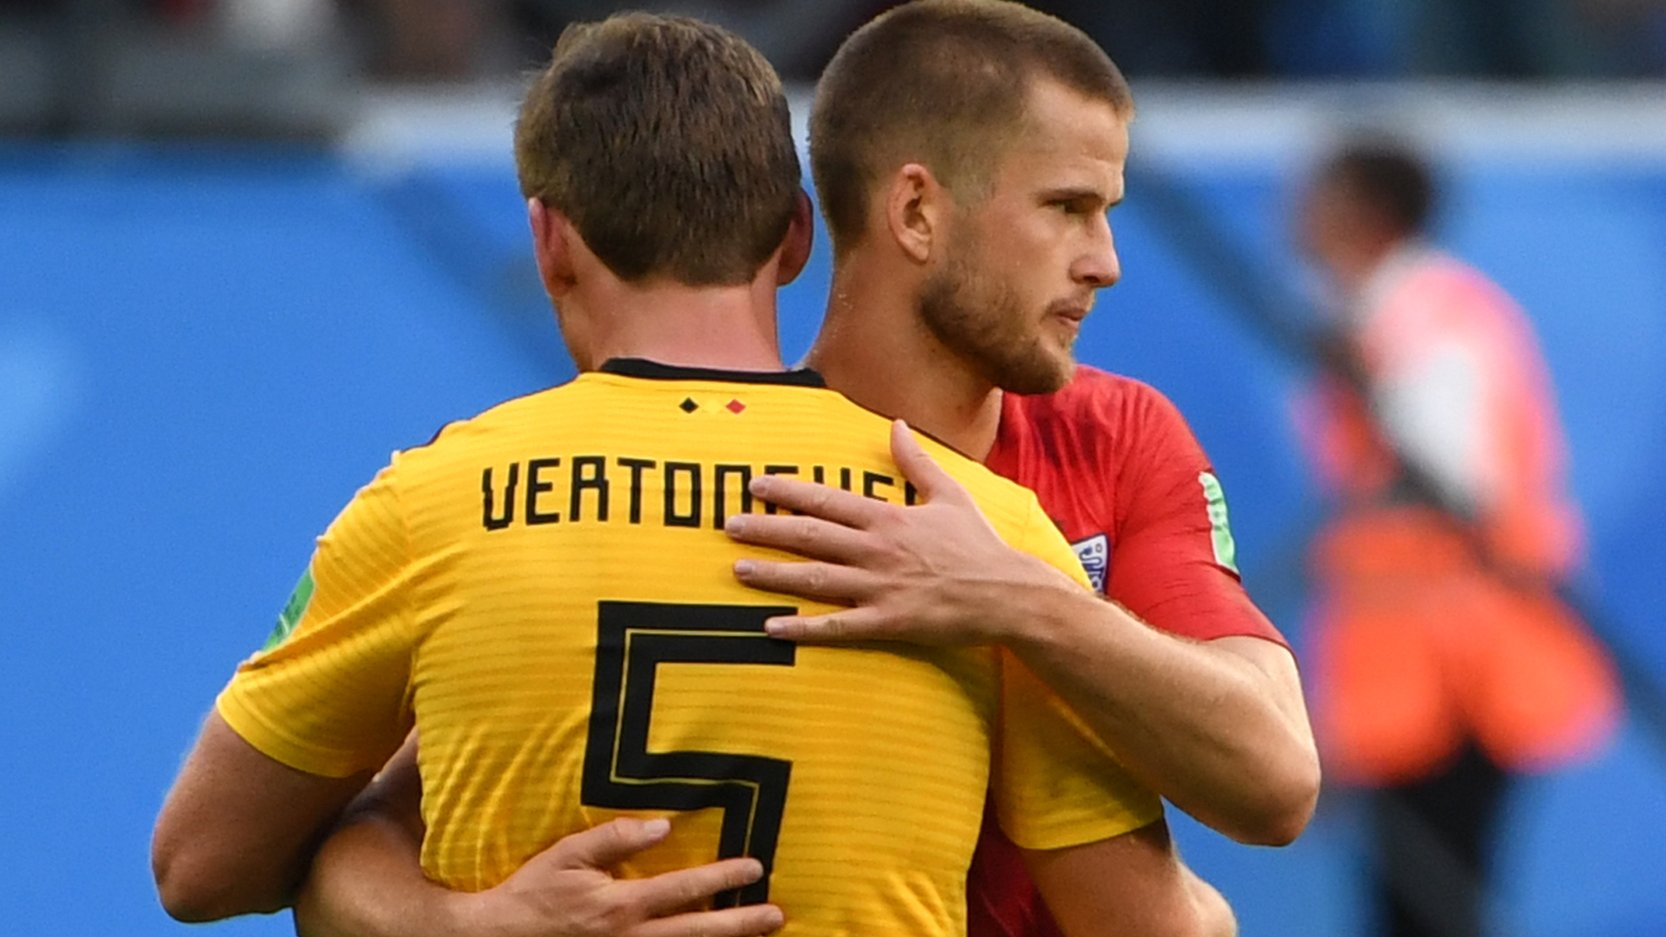 World Cup 2018: England finish fourth after Belgium defeat